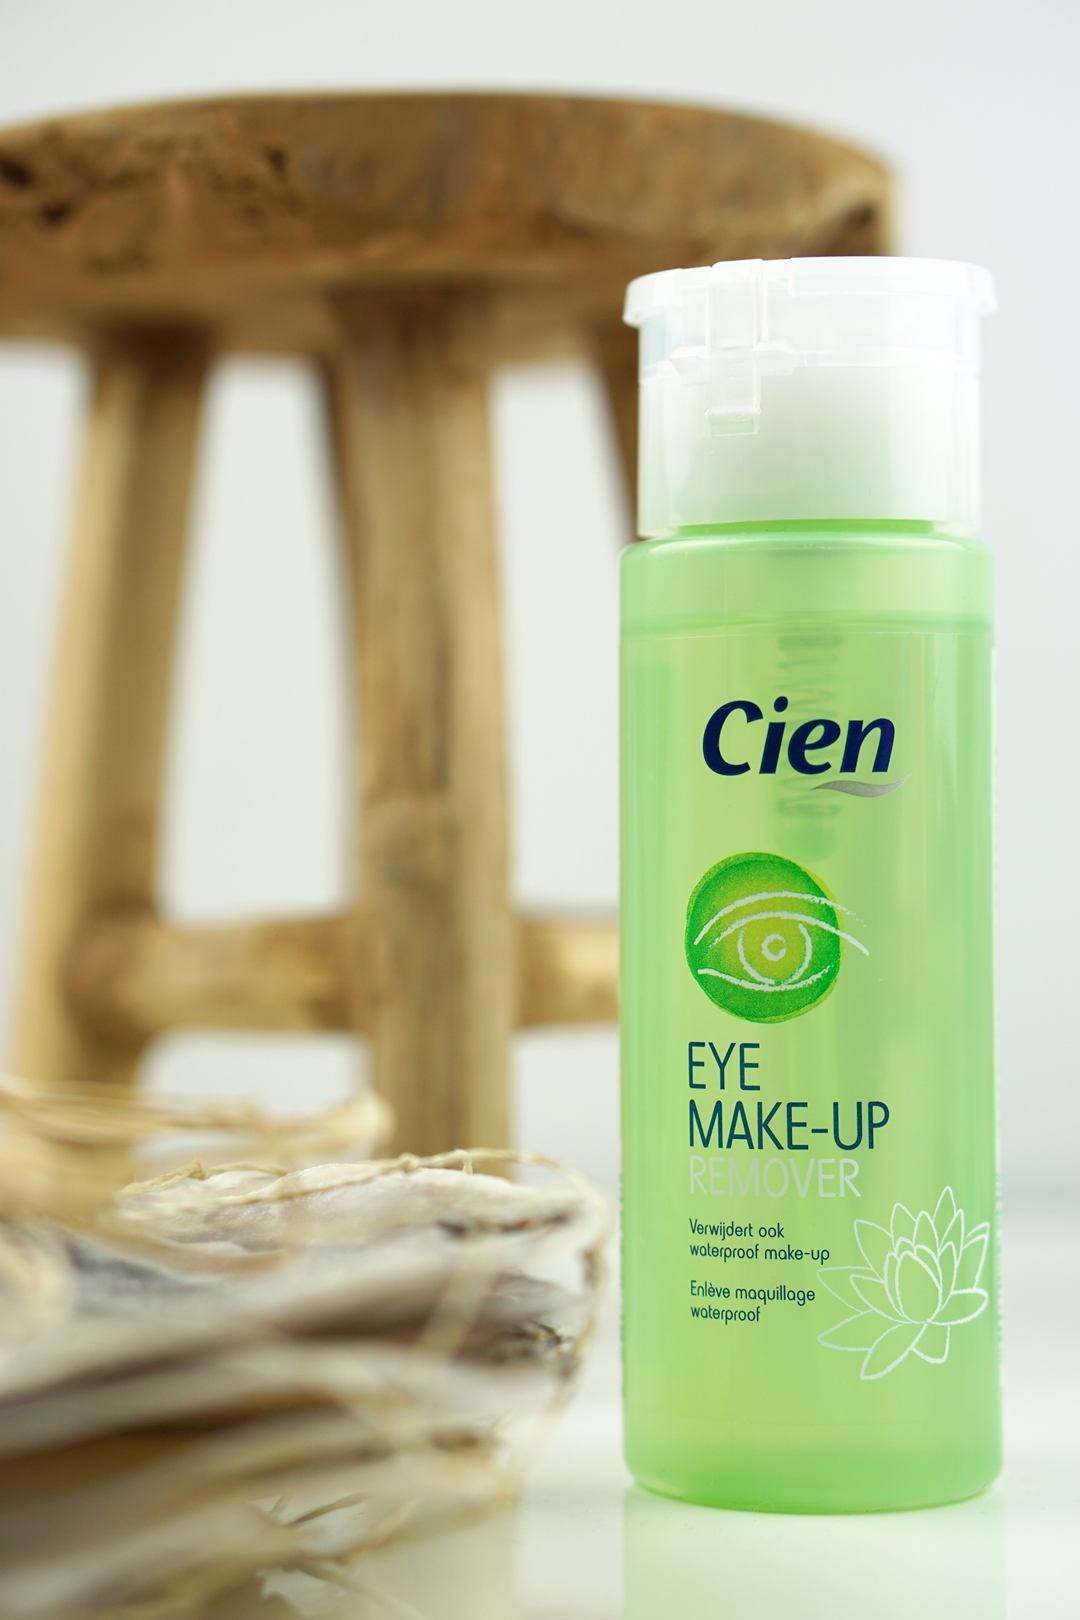 Cien Lidl Eye Make-Up Remover + Nail Polish Remover